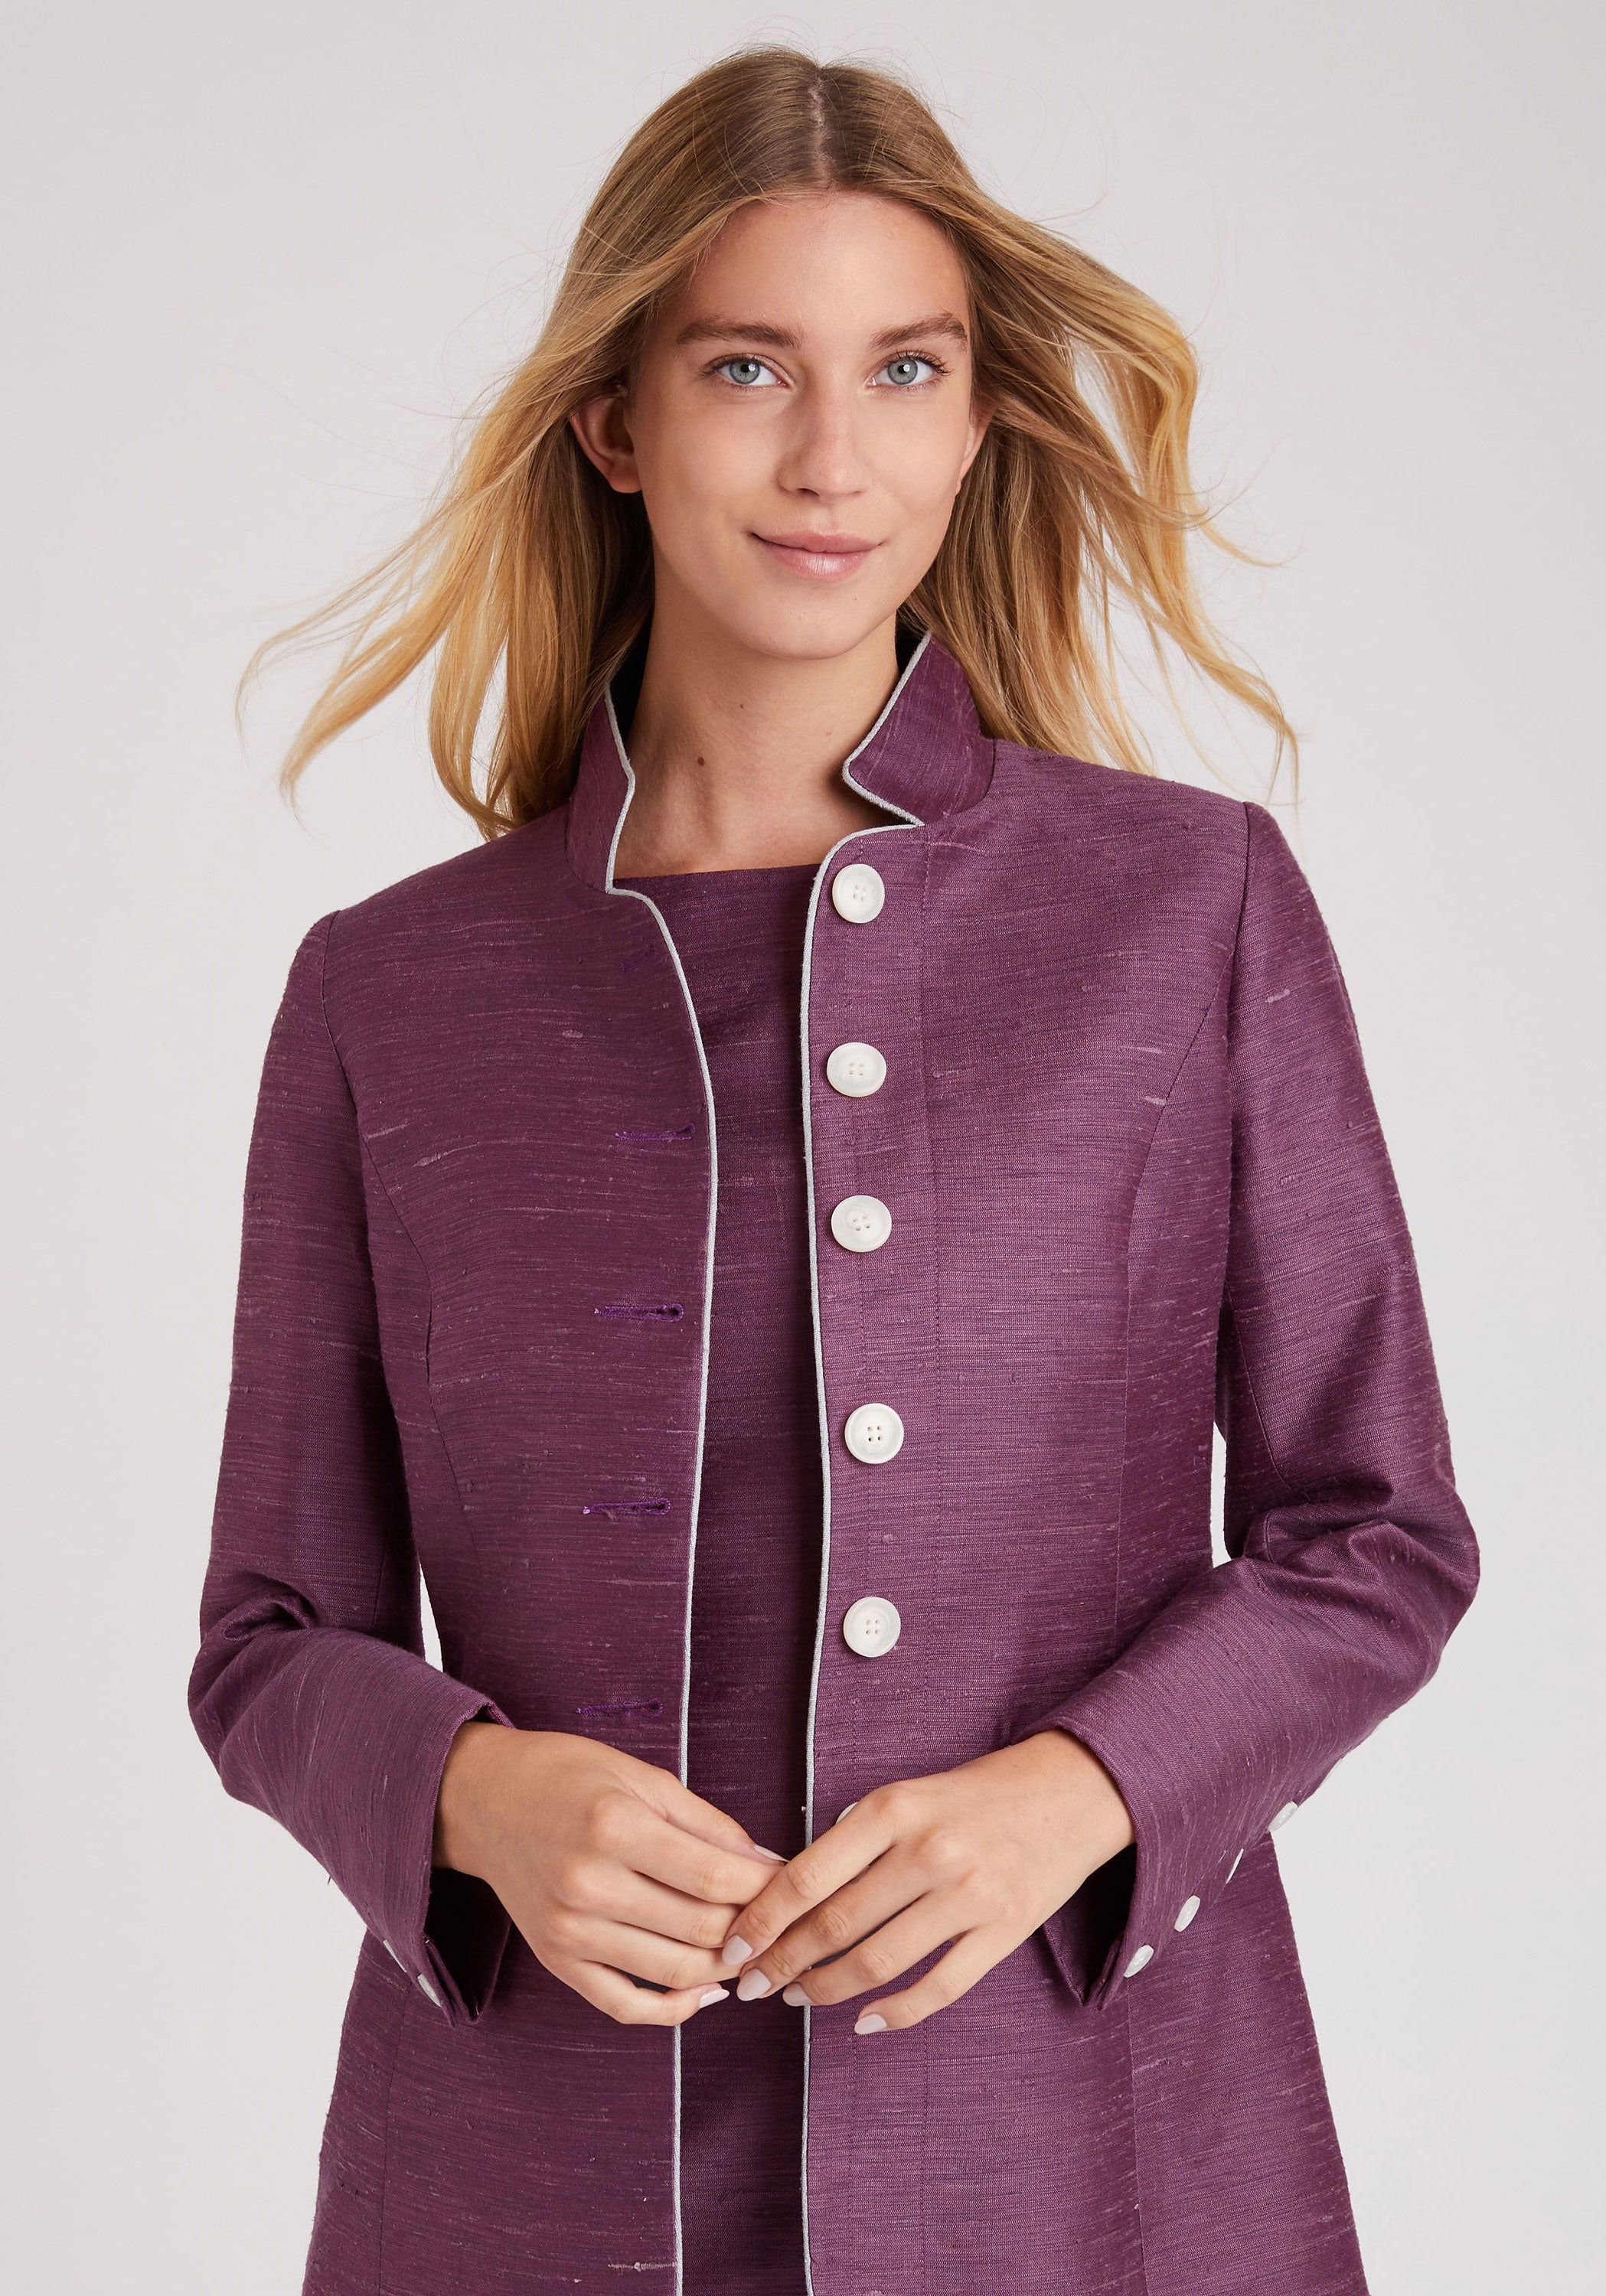 Patmos Jacket in Dahlia Purple Vienne Silk